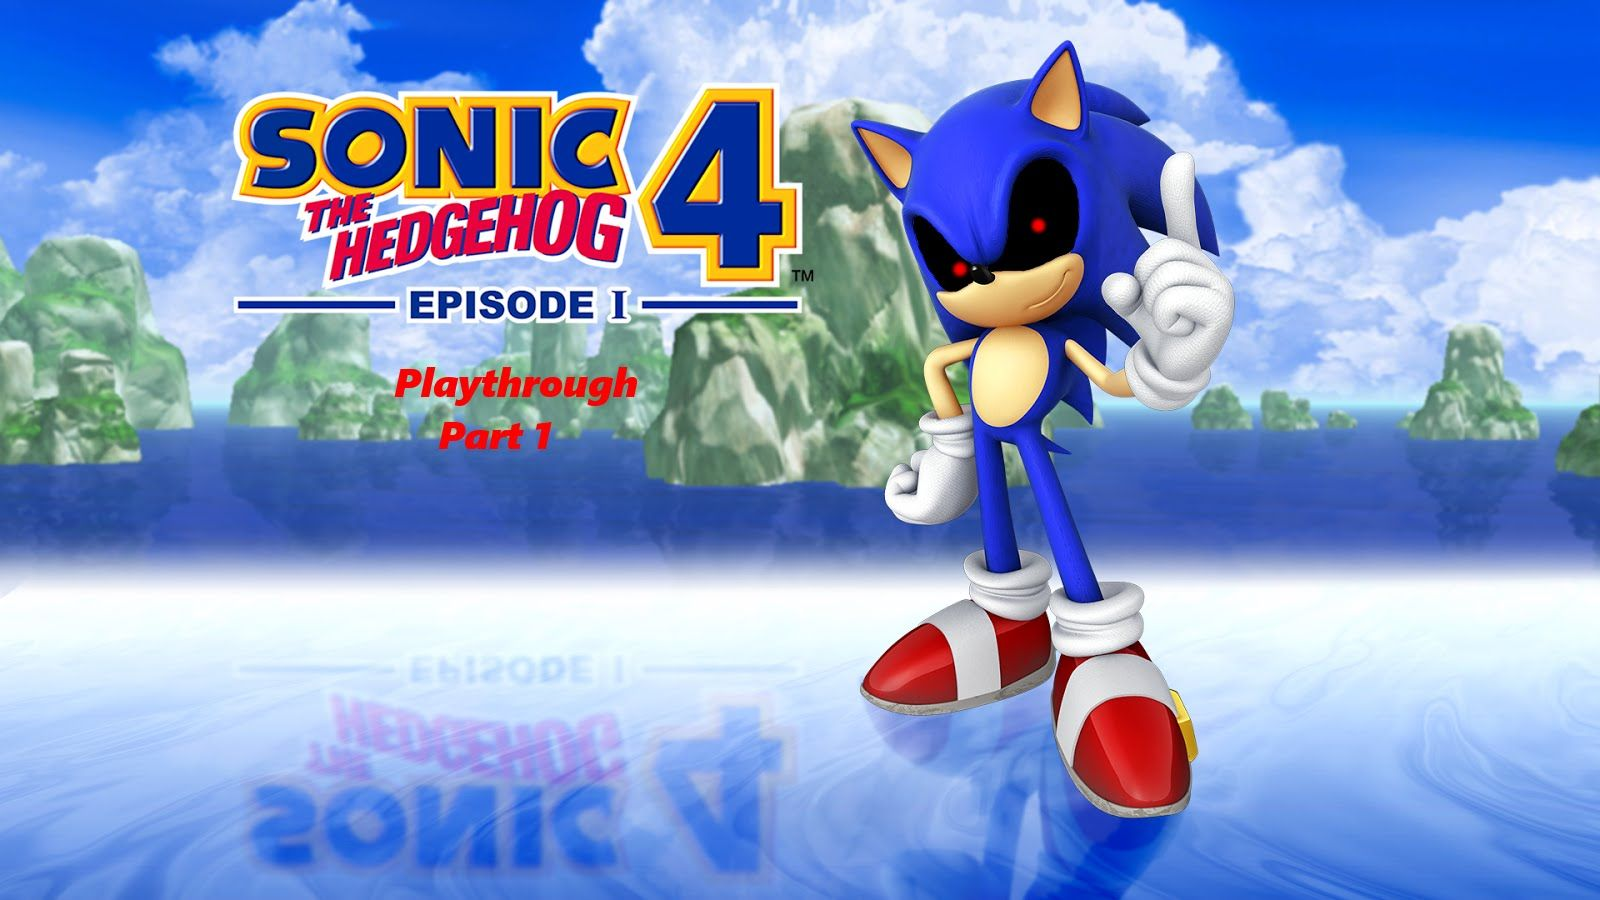 Sonic The Hedgehog 4 Episode 1 w/ Sonic.EXE Mod